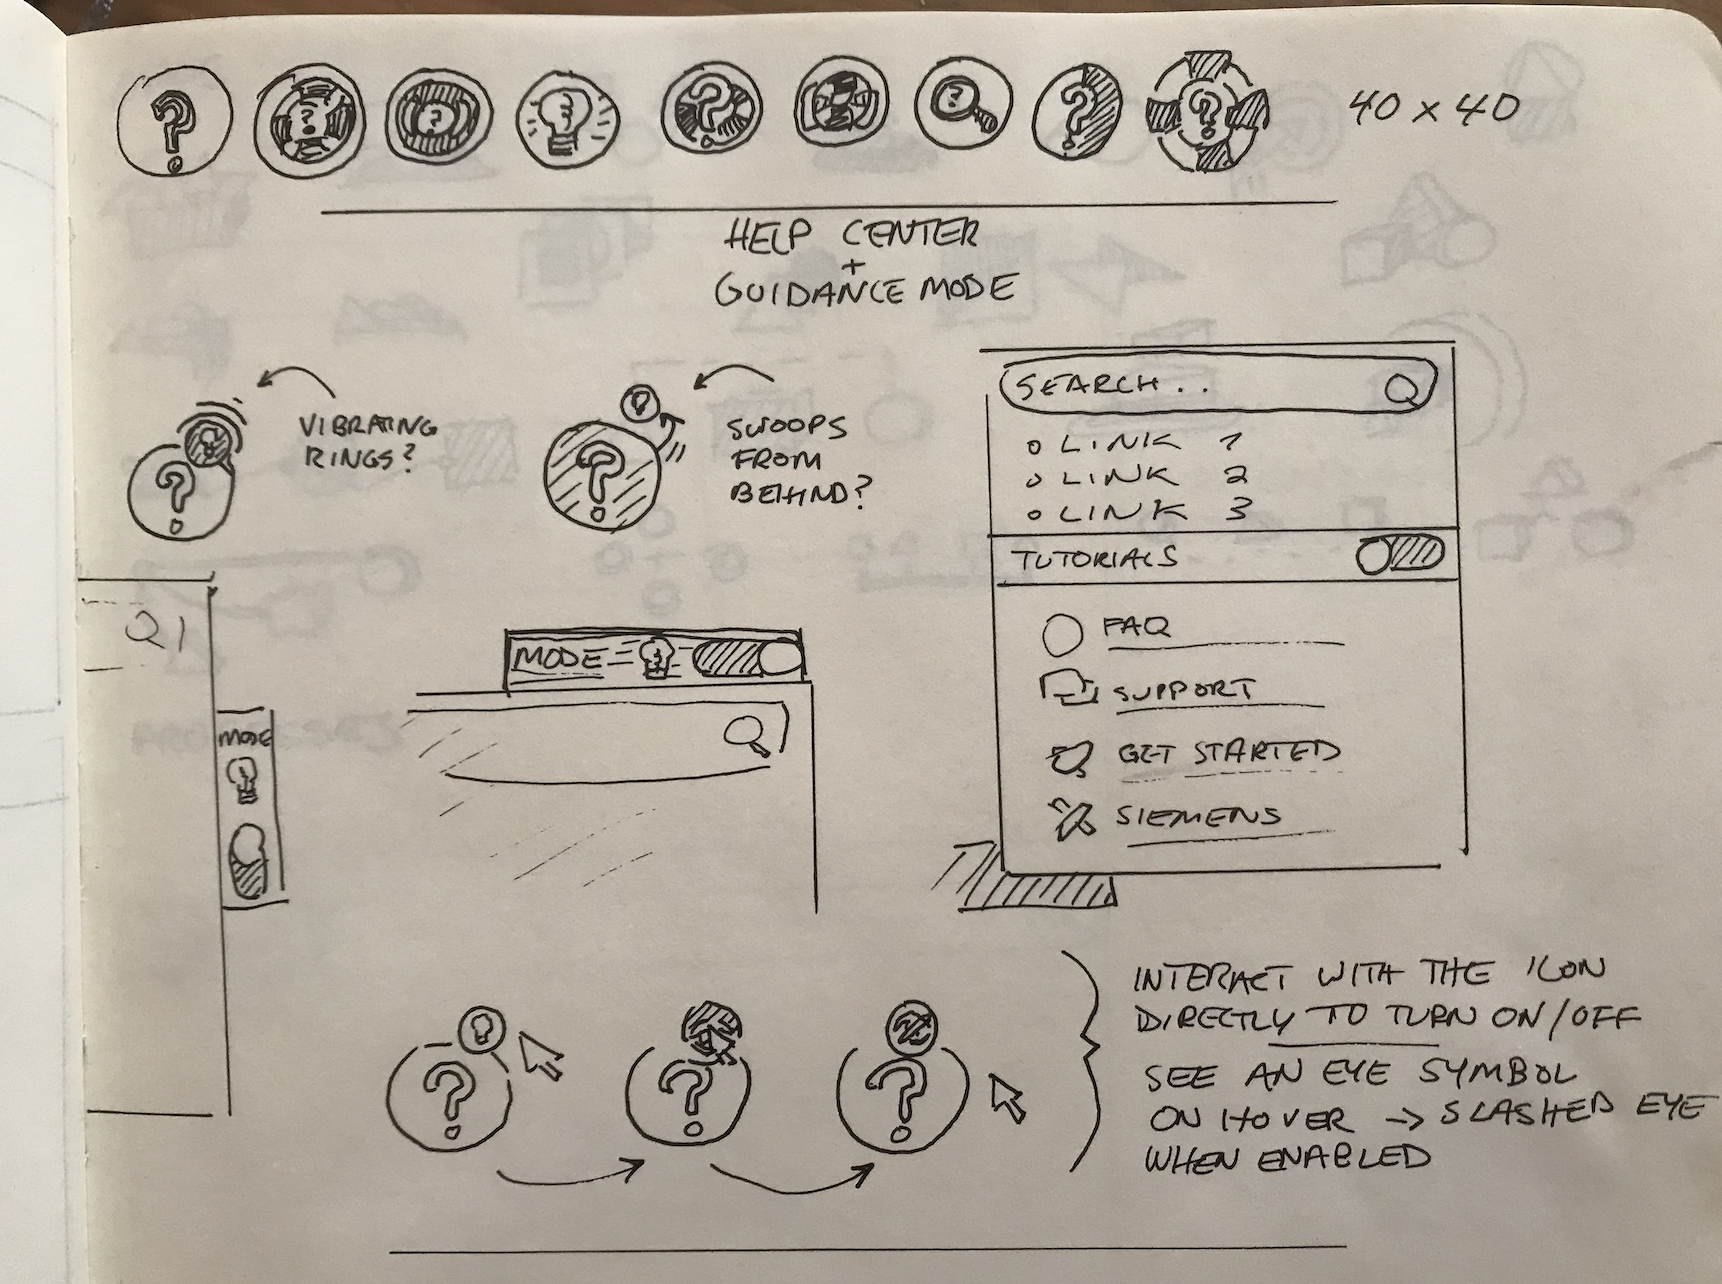 Initial hand-drawn concepts for Help Center.